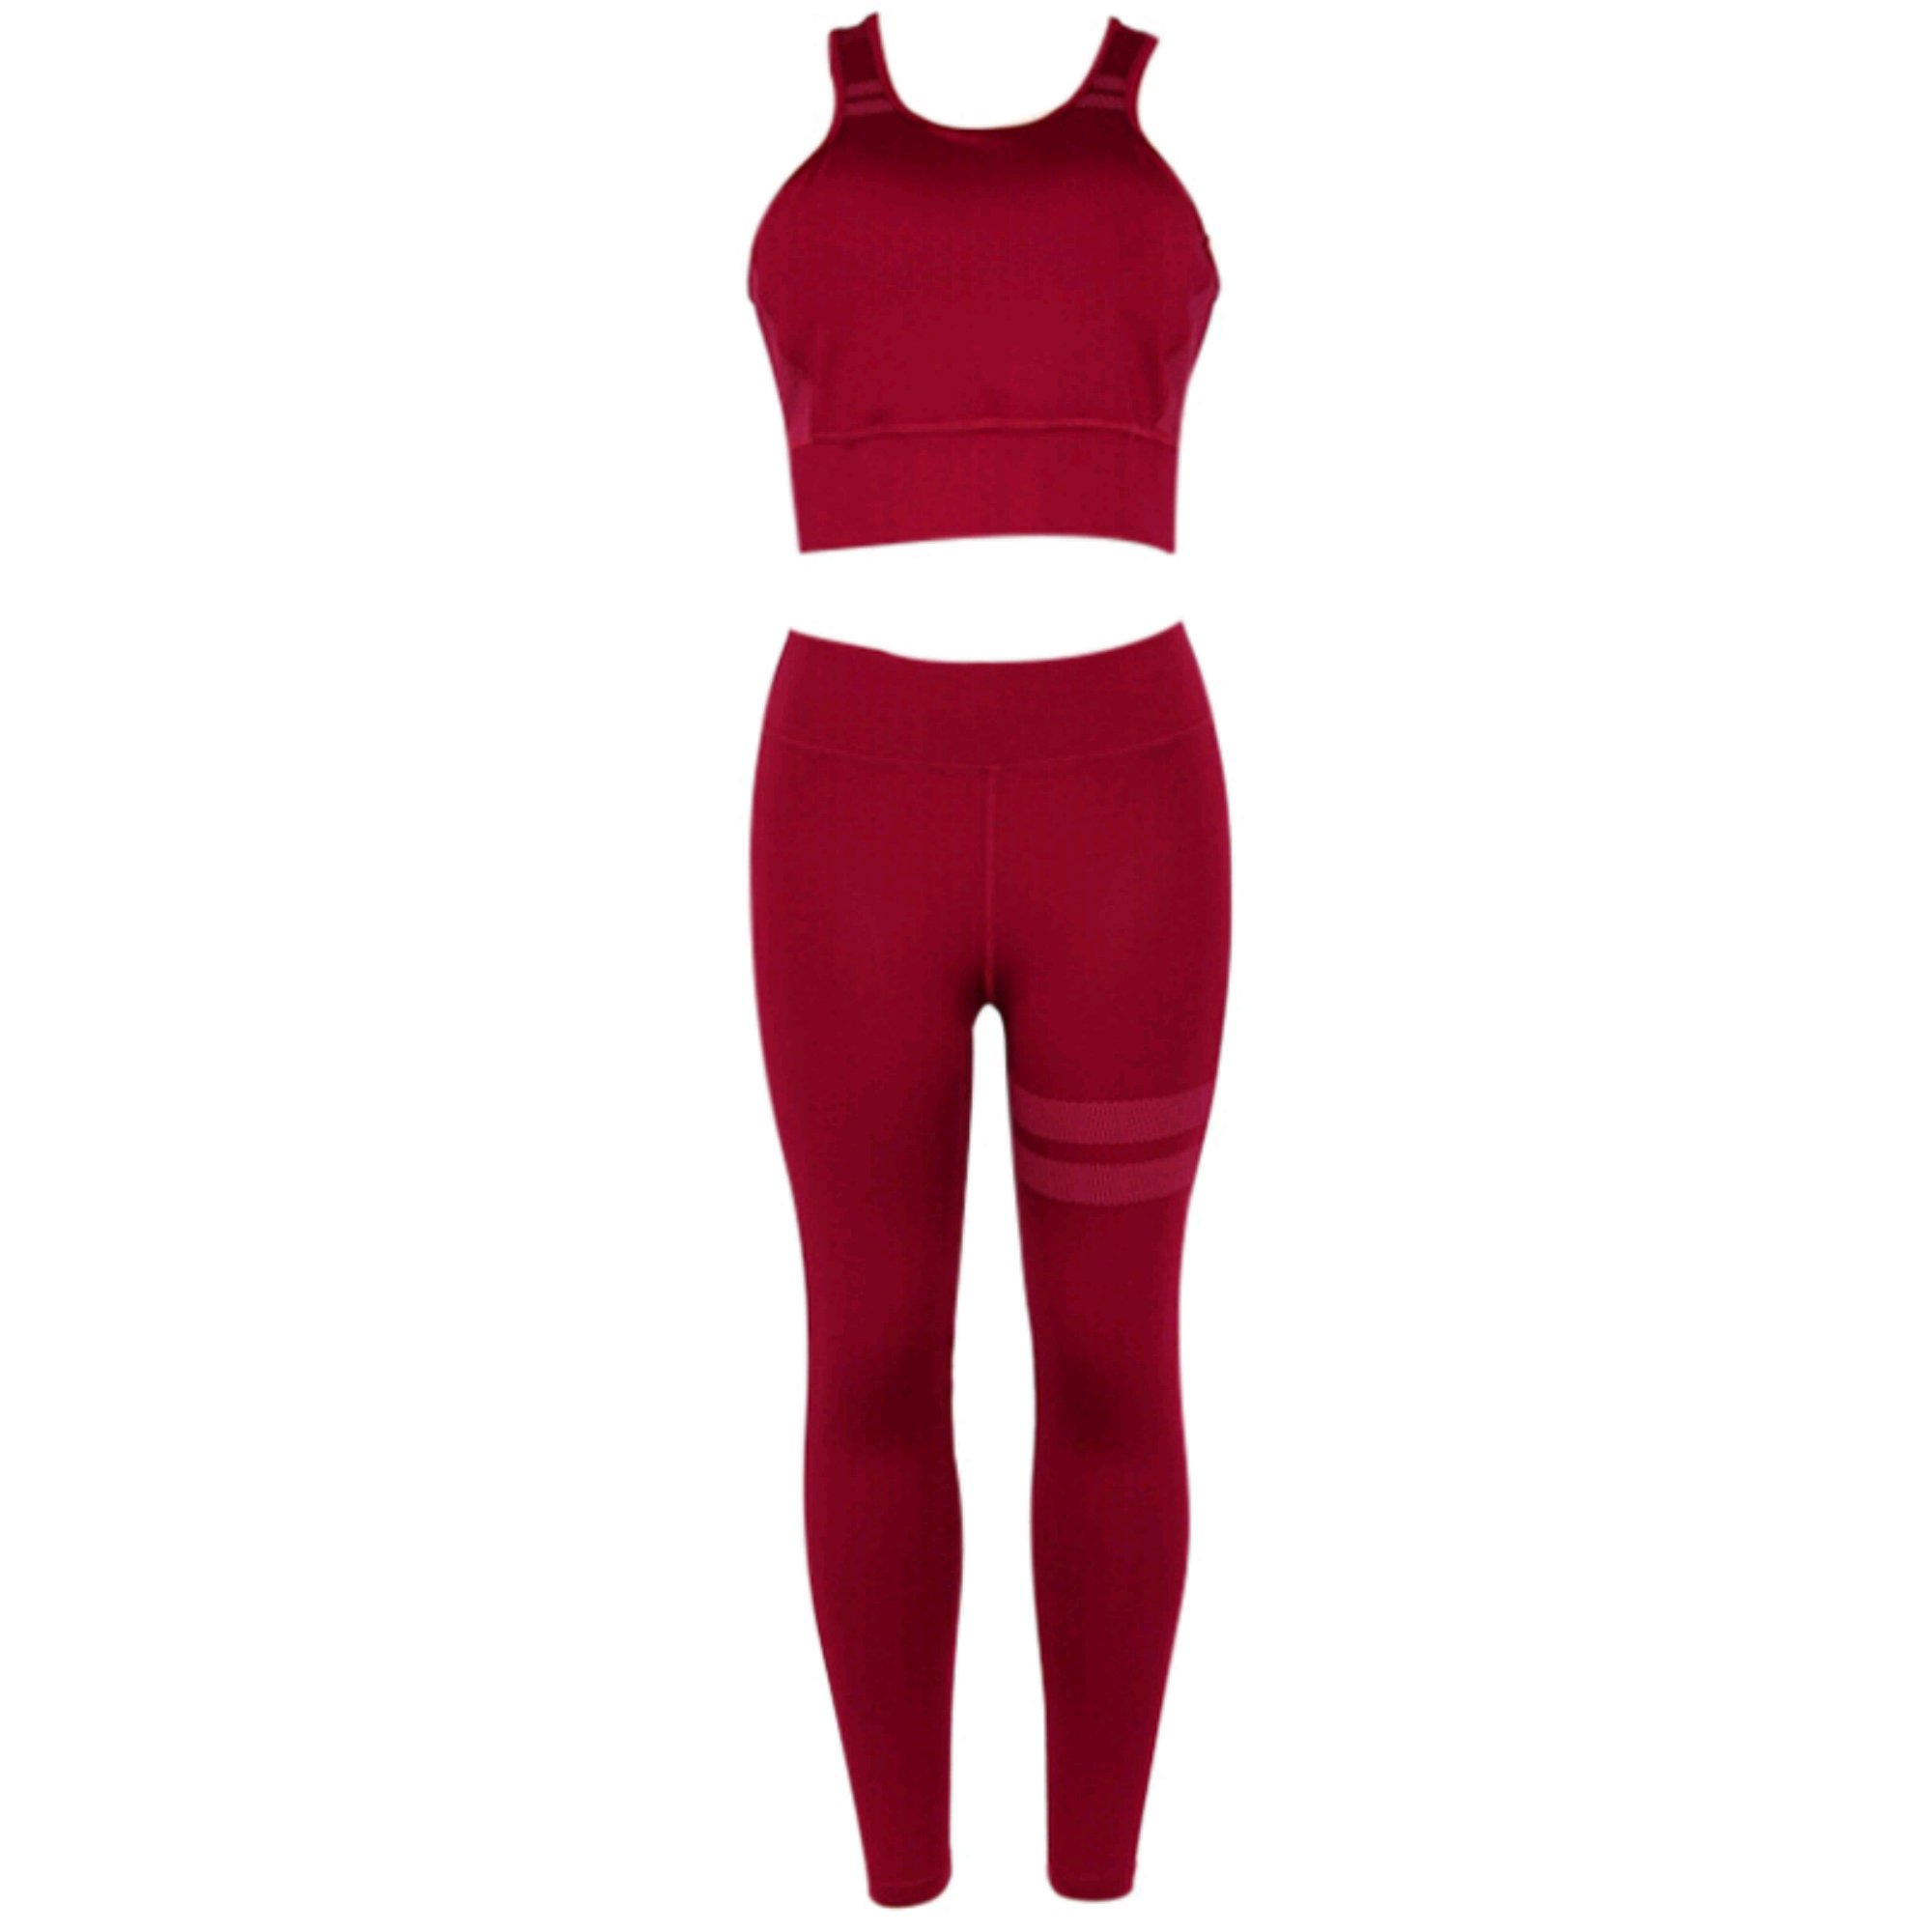 Premium Yoga Clothes Sets - Active Wear Tank Top/Bra and High-Waist Leggings 2 Piece Sets - Women Gym Clothes (Large, Red)